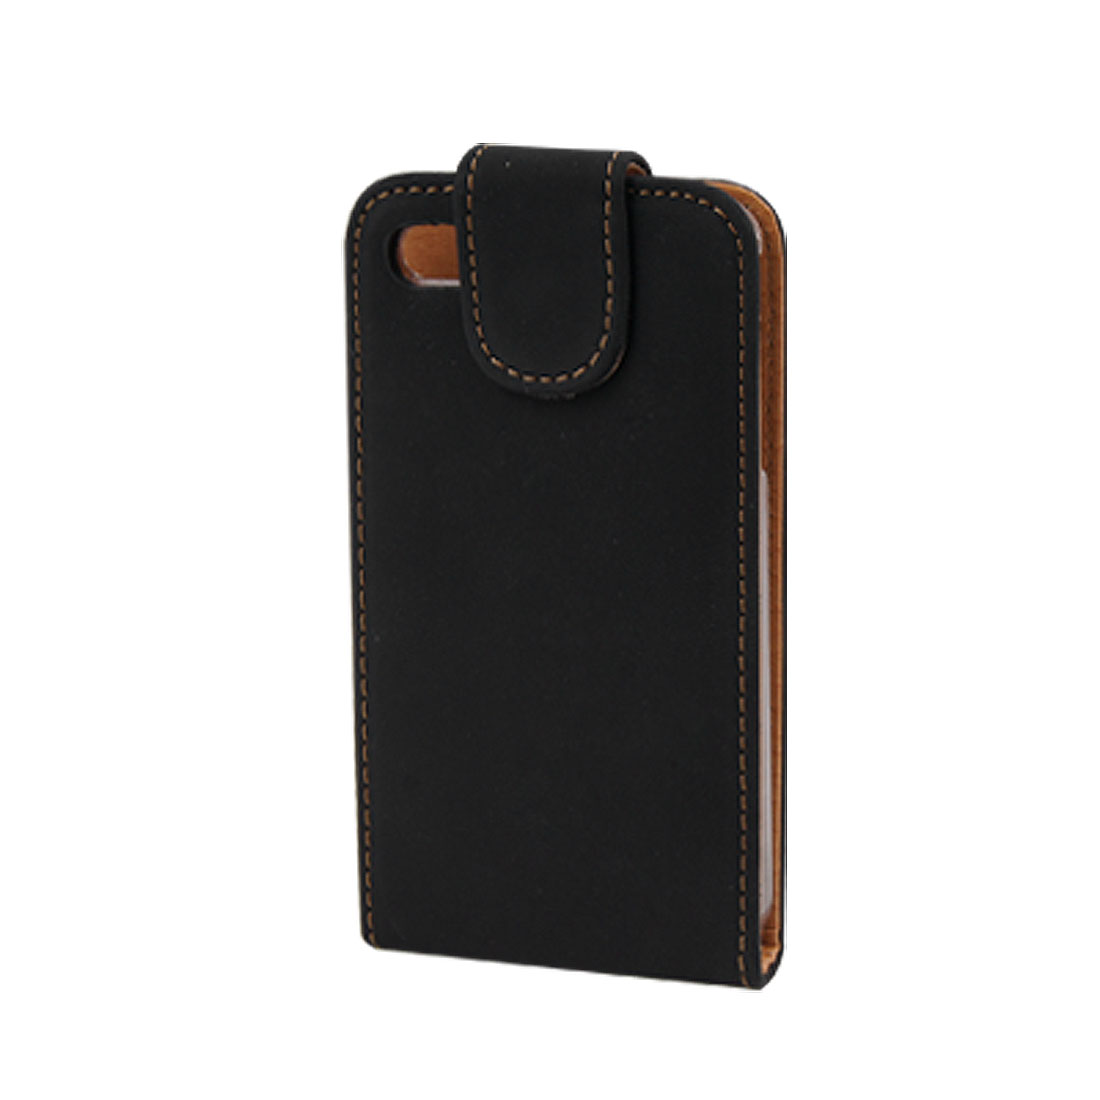 Magnetic Flip Black Faux Leather Vertical Case for iPhone 4 4G